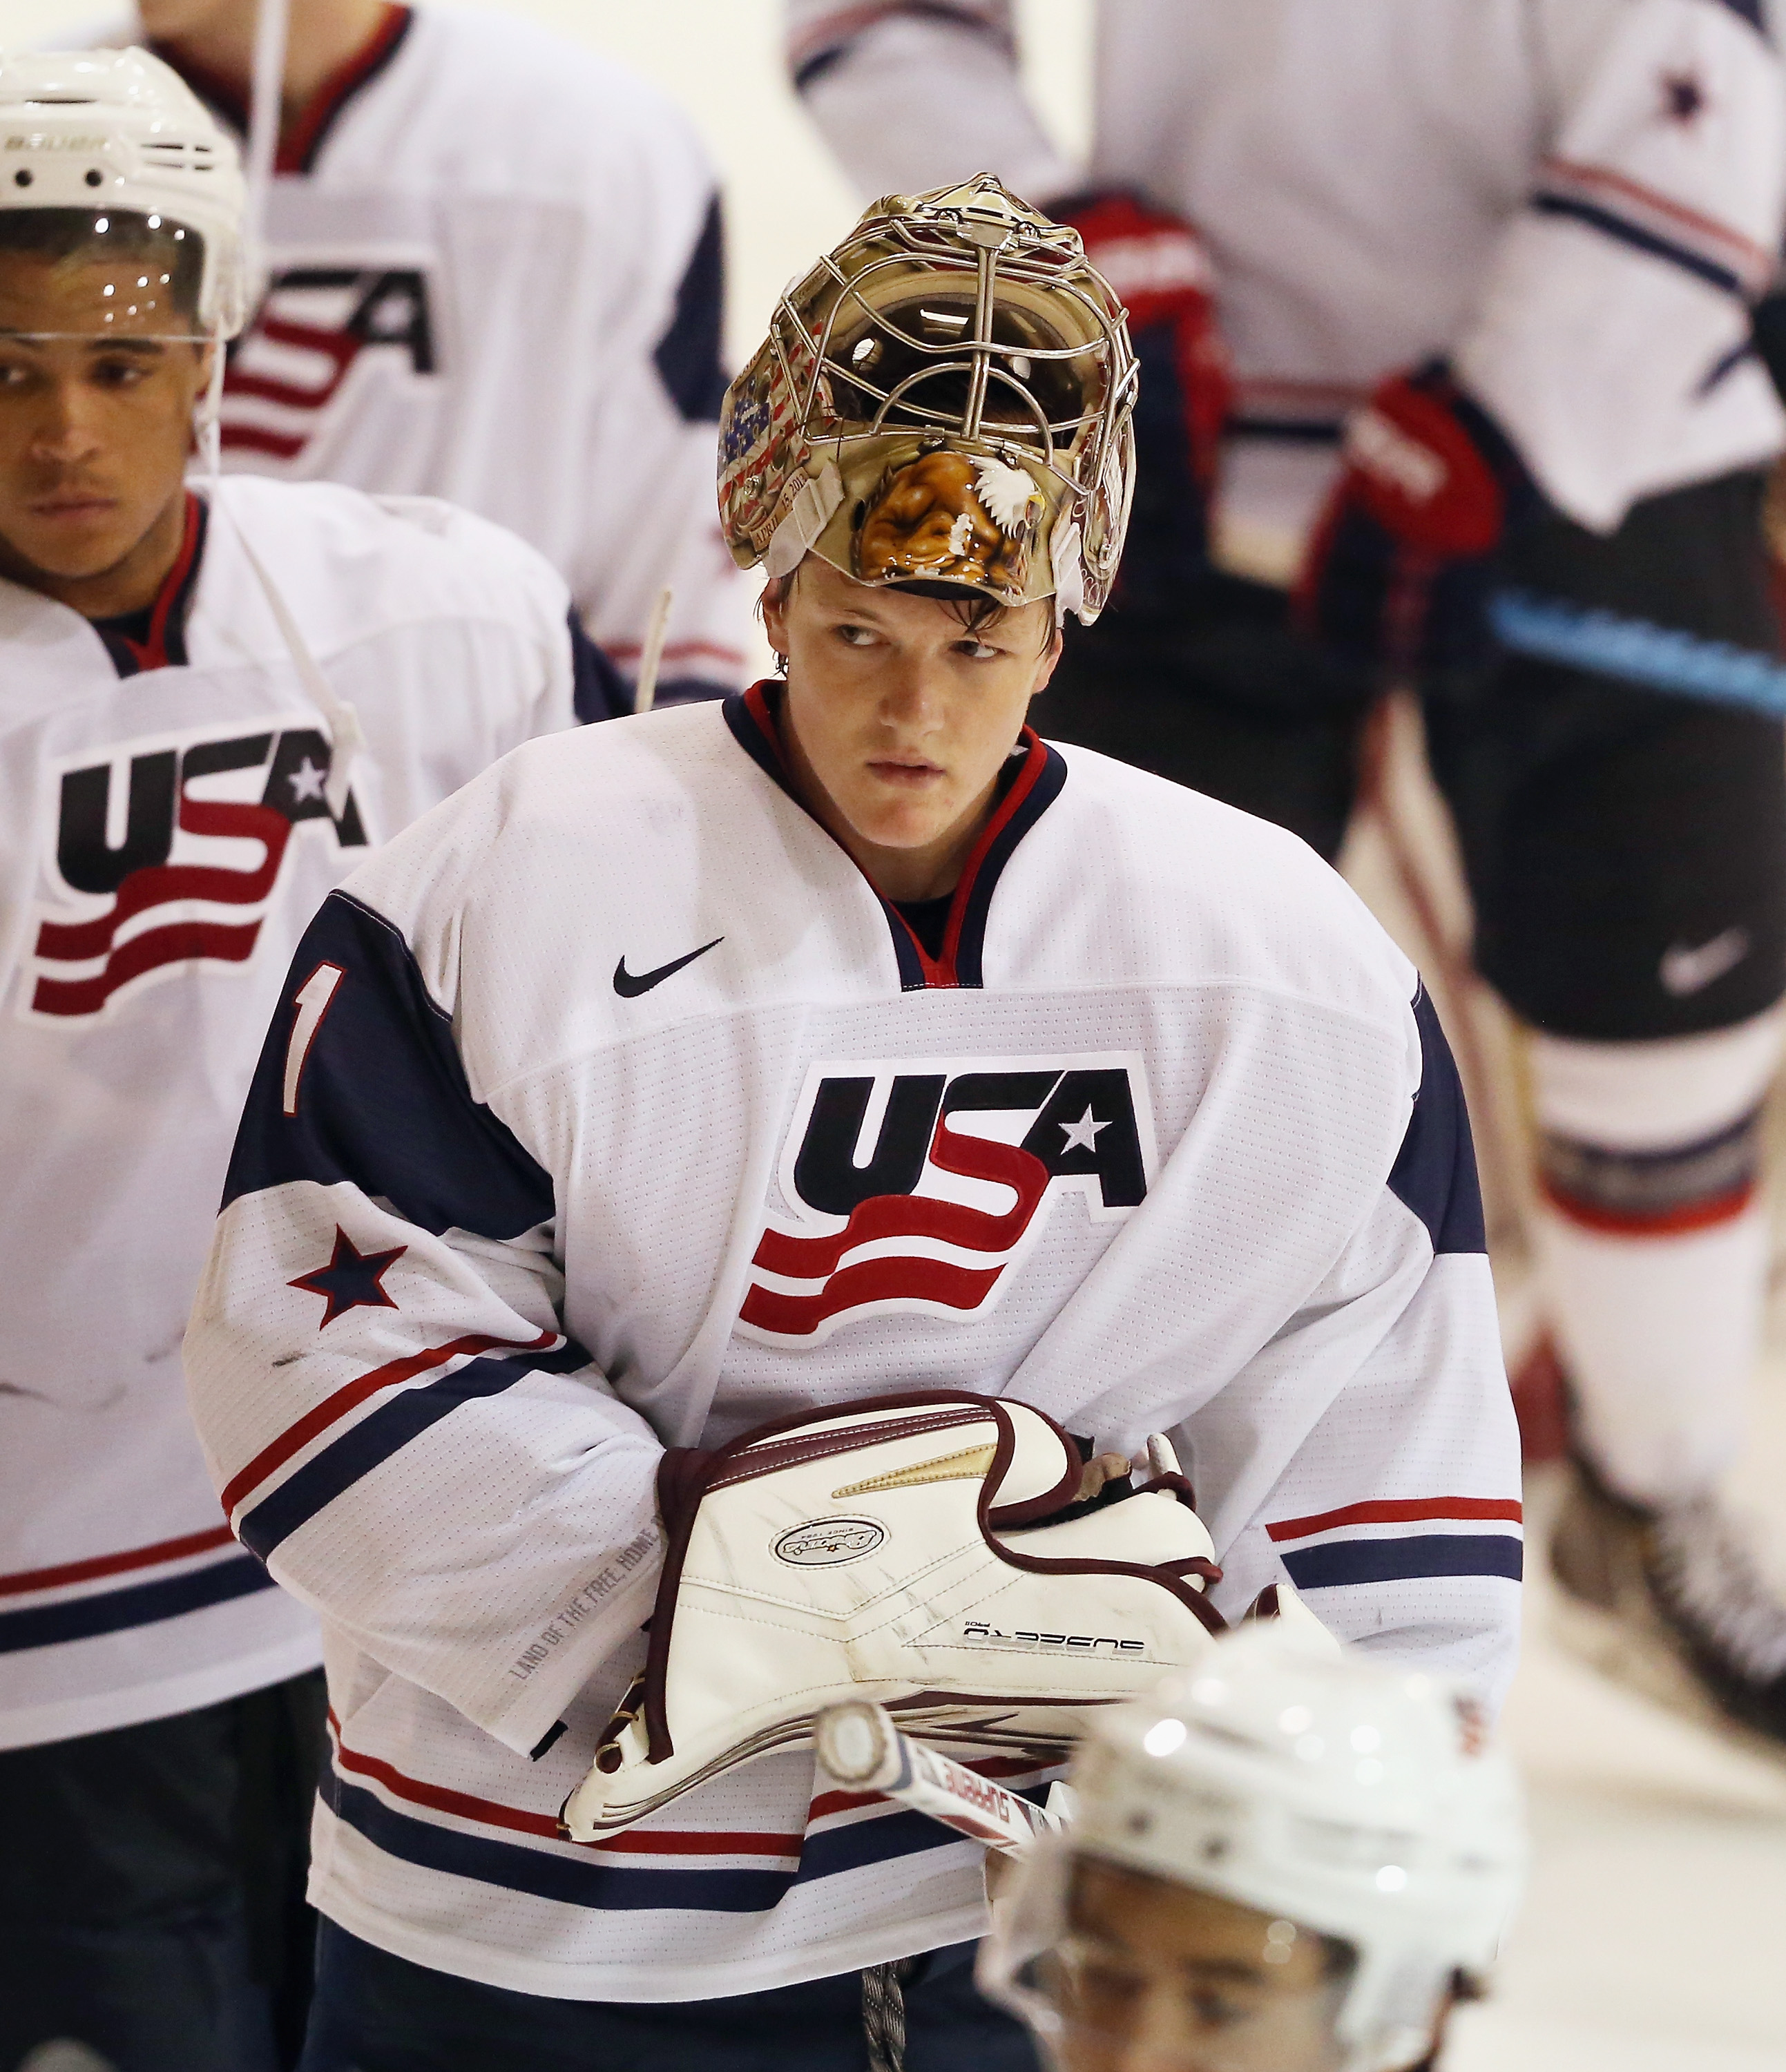 NCAA: 18 D1 Players On US World Junior Camp Roster